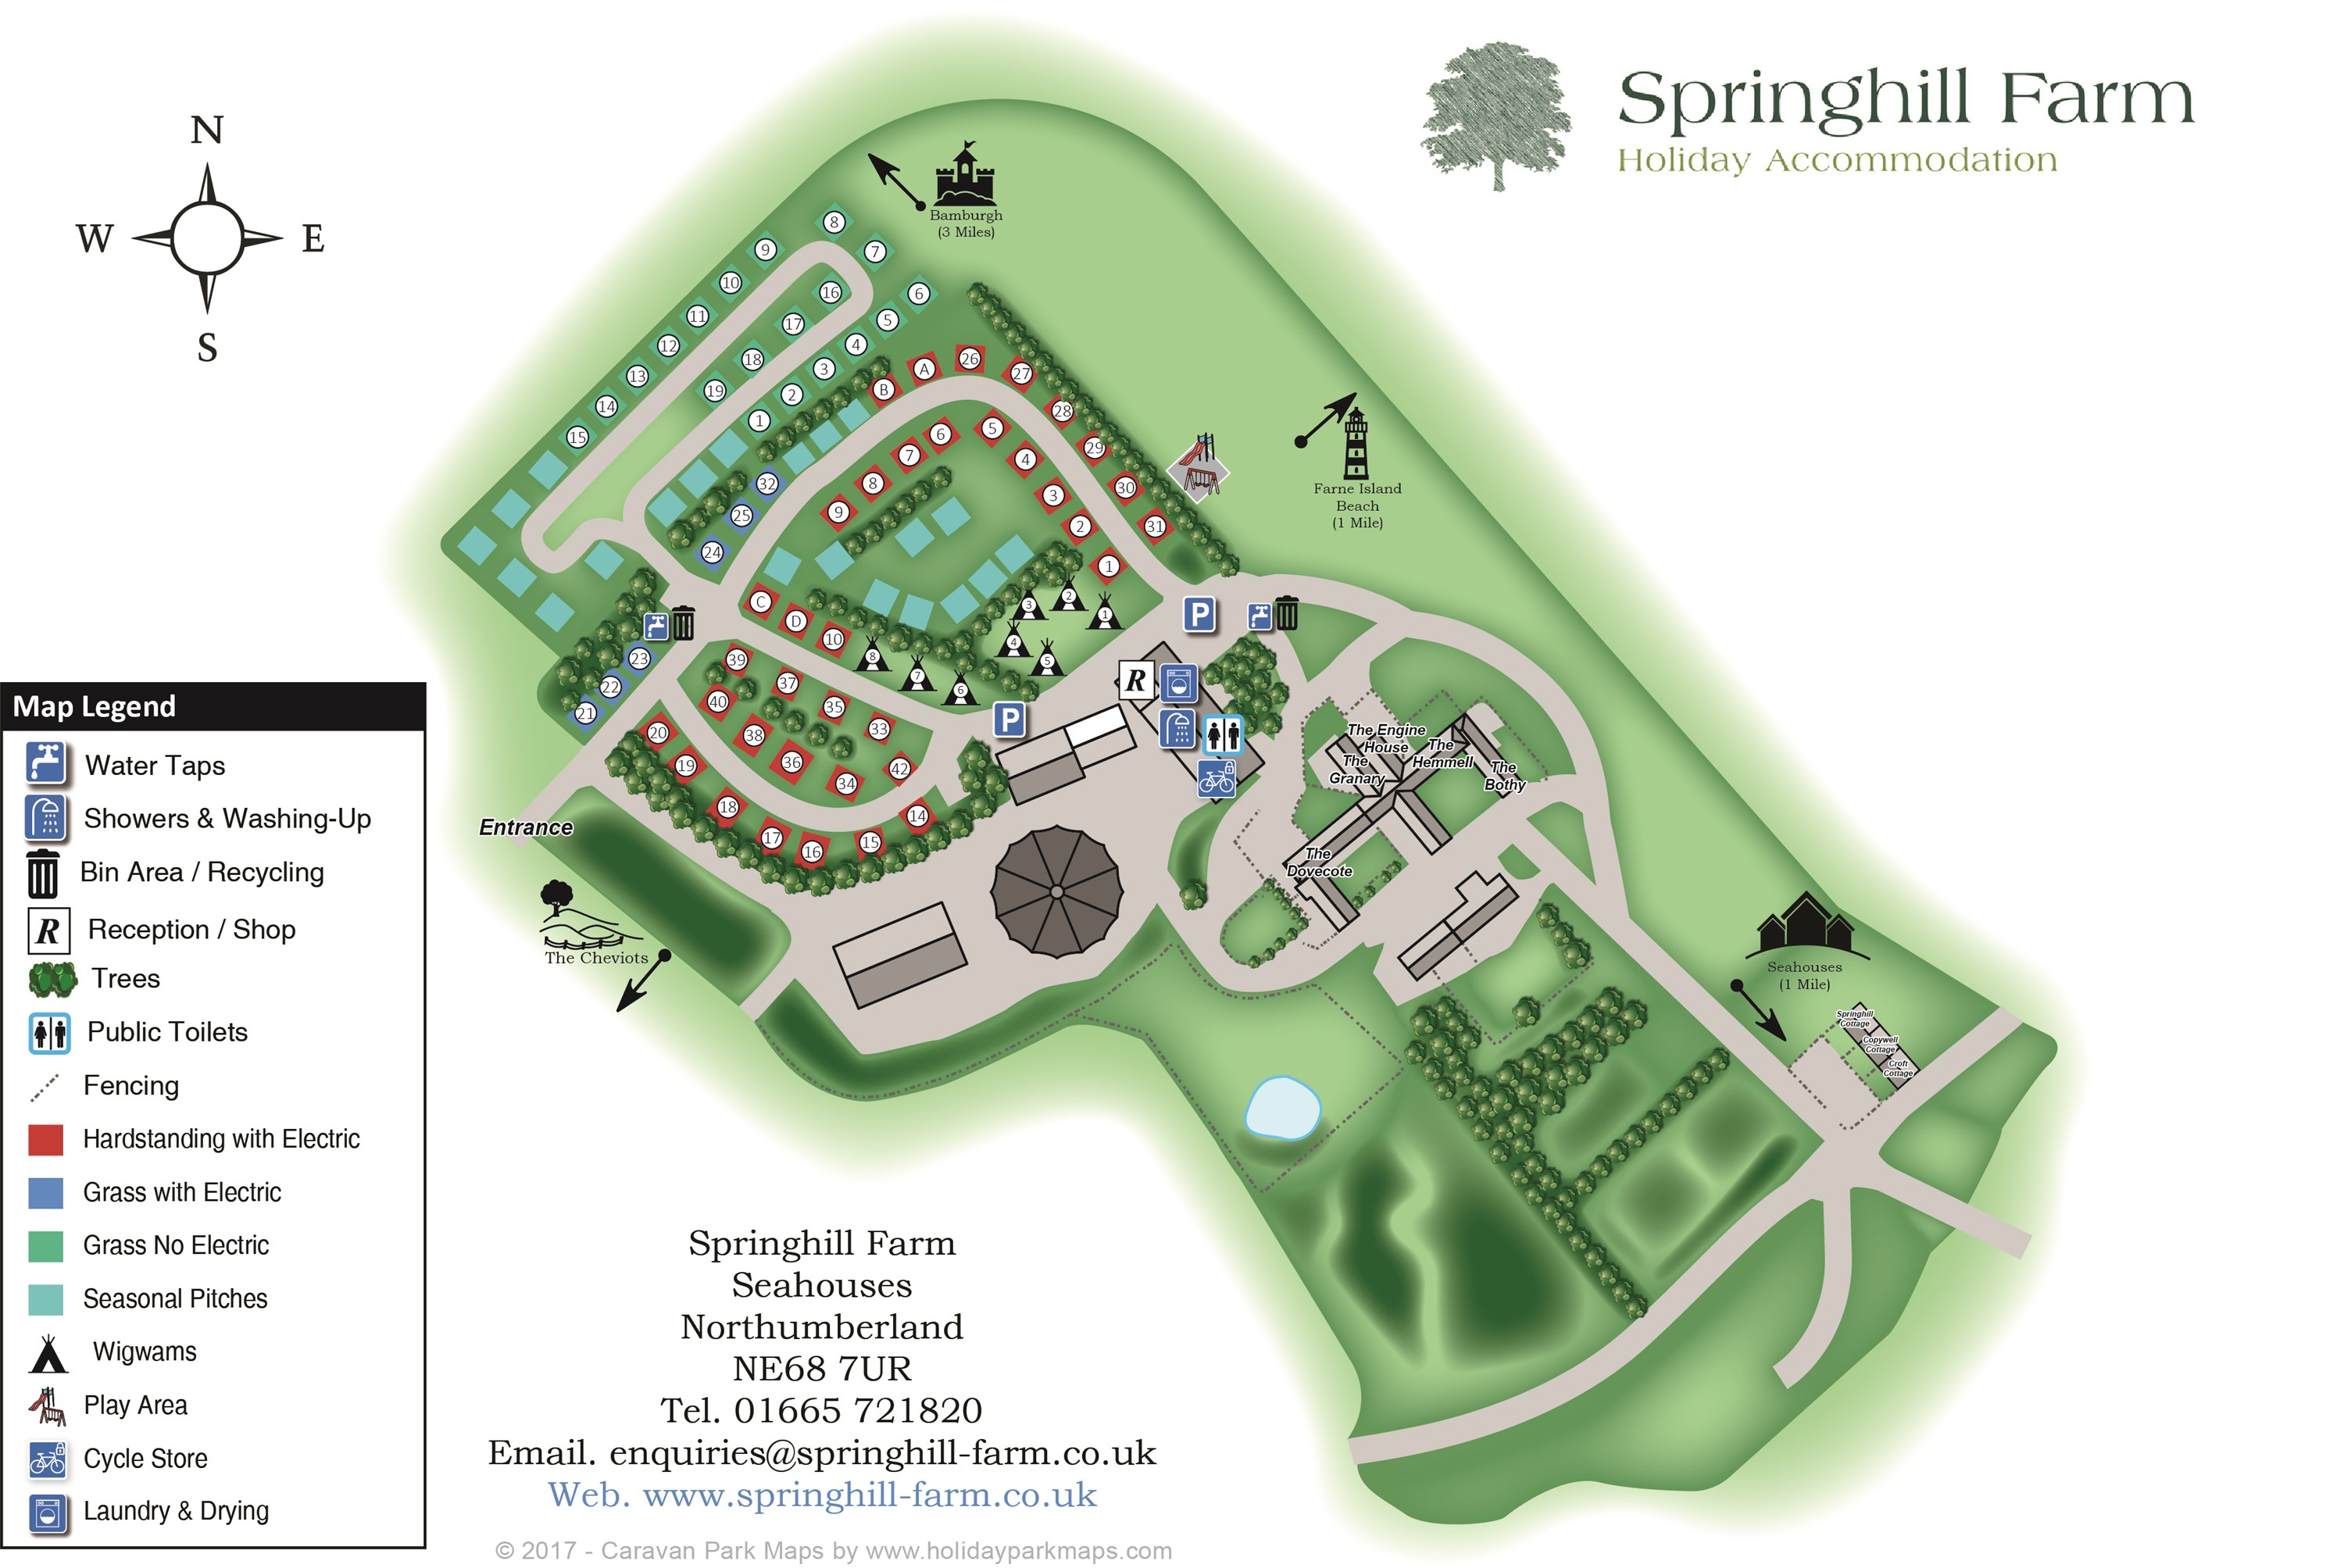 Springhill Farm Holiday Accommodation in Seahouses